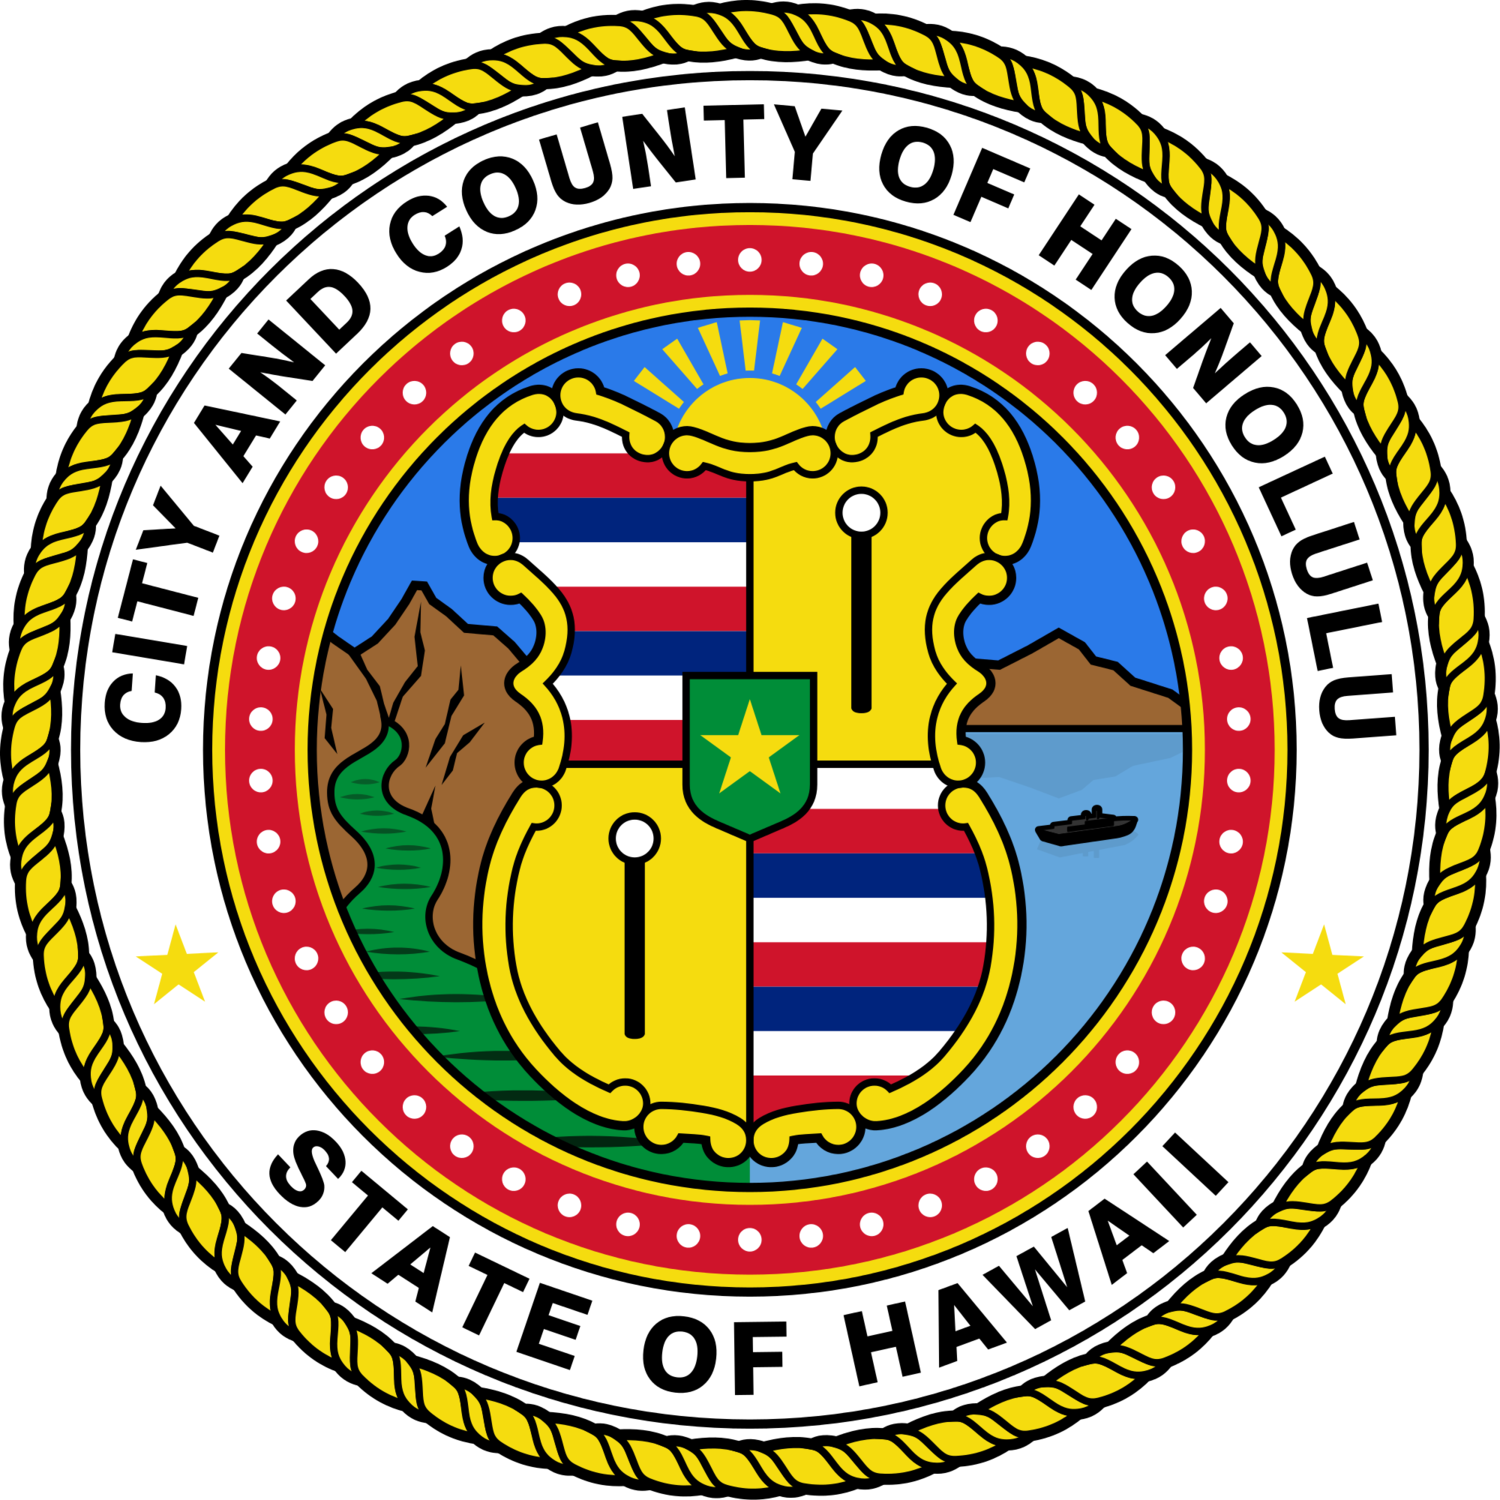 Honolulu Office of Climate Change, Sustainability and Resiliency